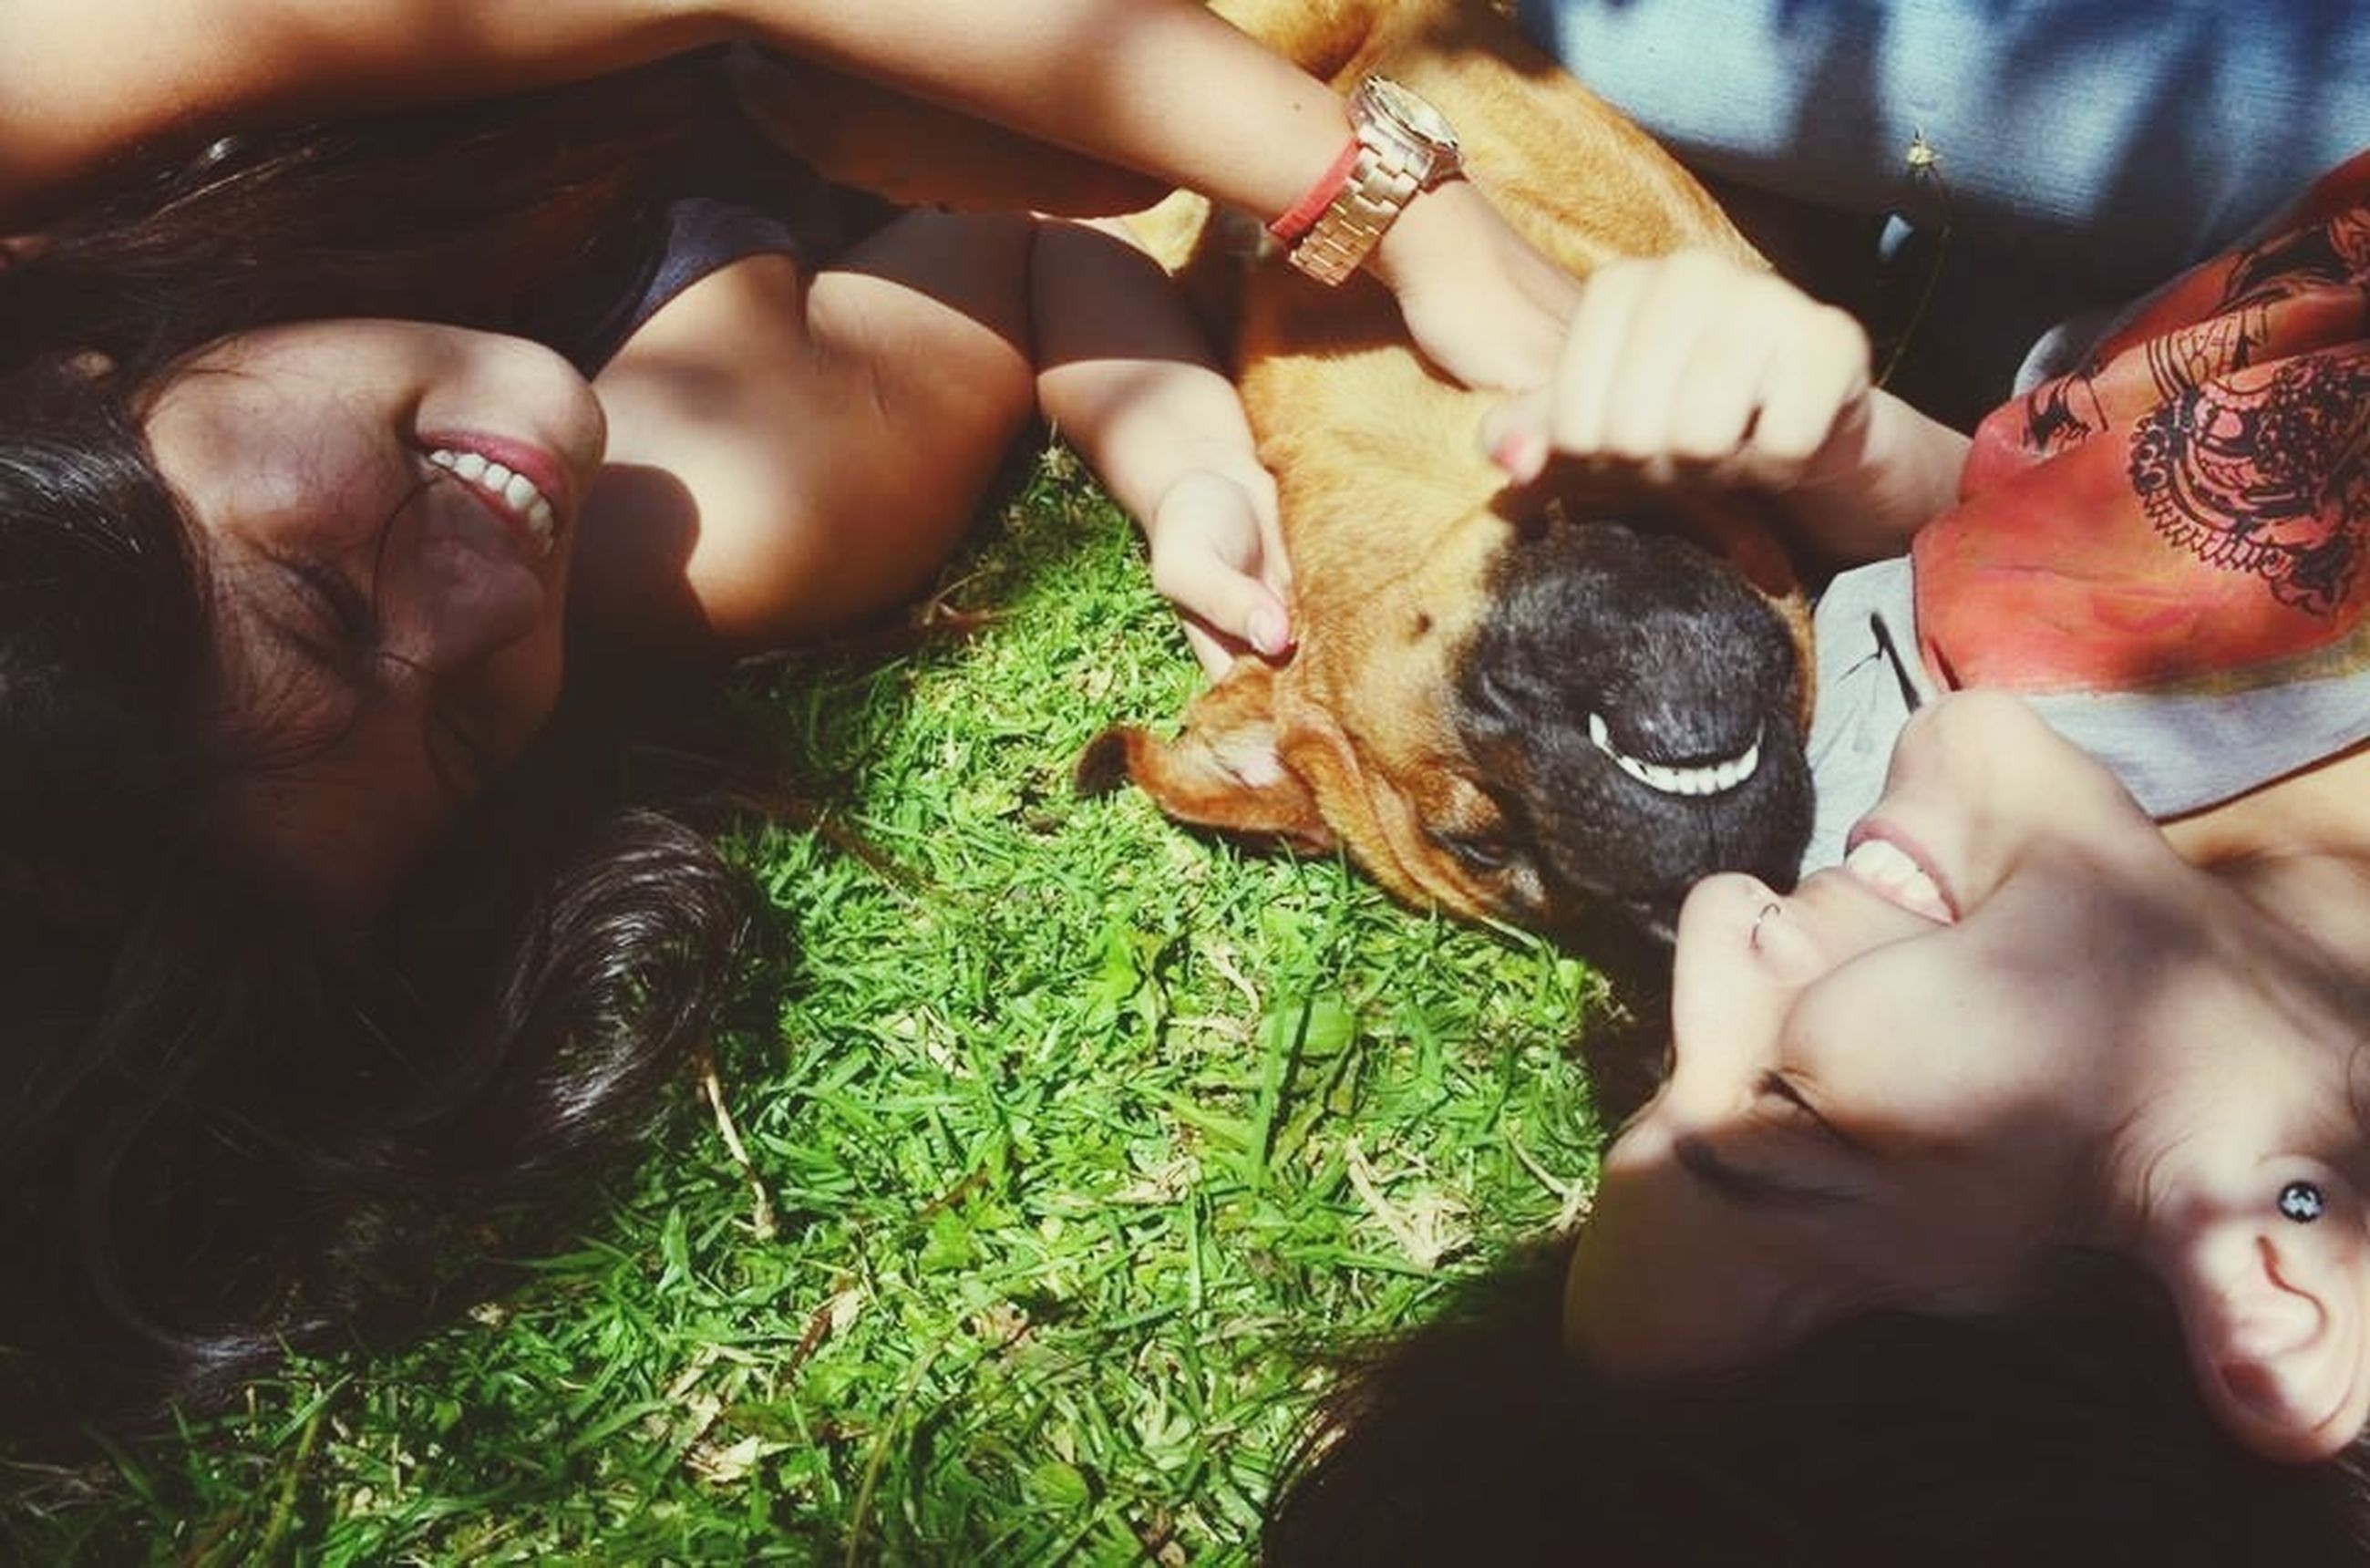 lifestyles, togetherness, leisure activity, bonding, animal themes, looking at camera, portrait, love, person, relaxation, young women, dog, pets, domestic animals, high angle view, friendship